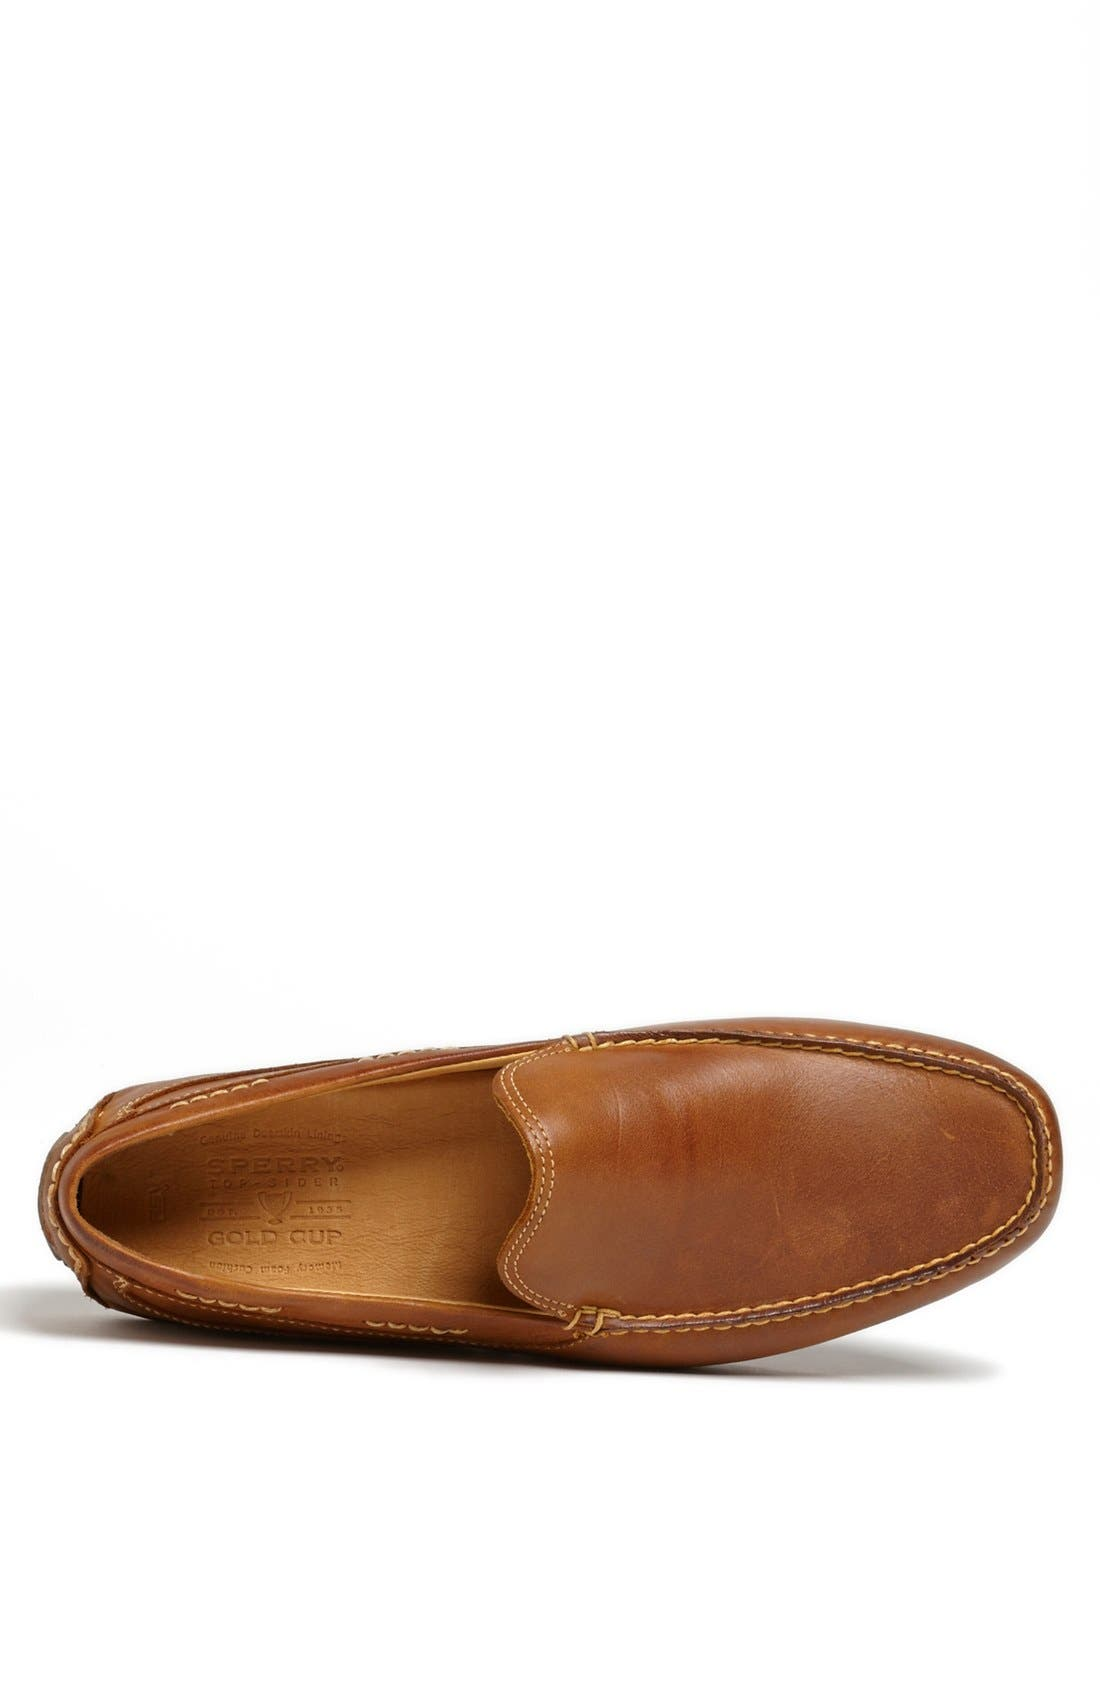 Alternate Image 3  - Sperry 'Gold Cup - Kennebunk' Driving Shoe